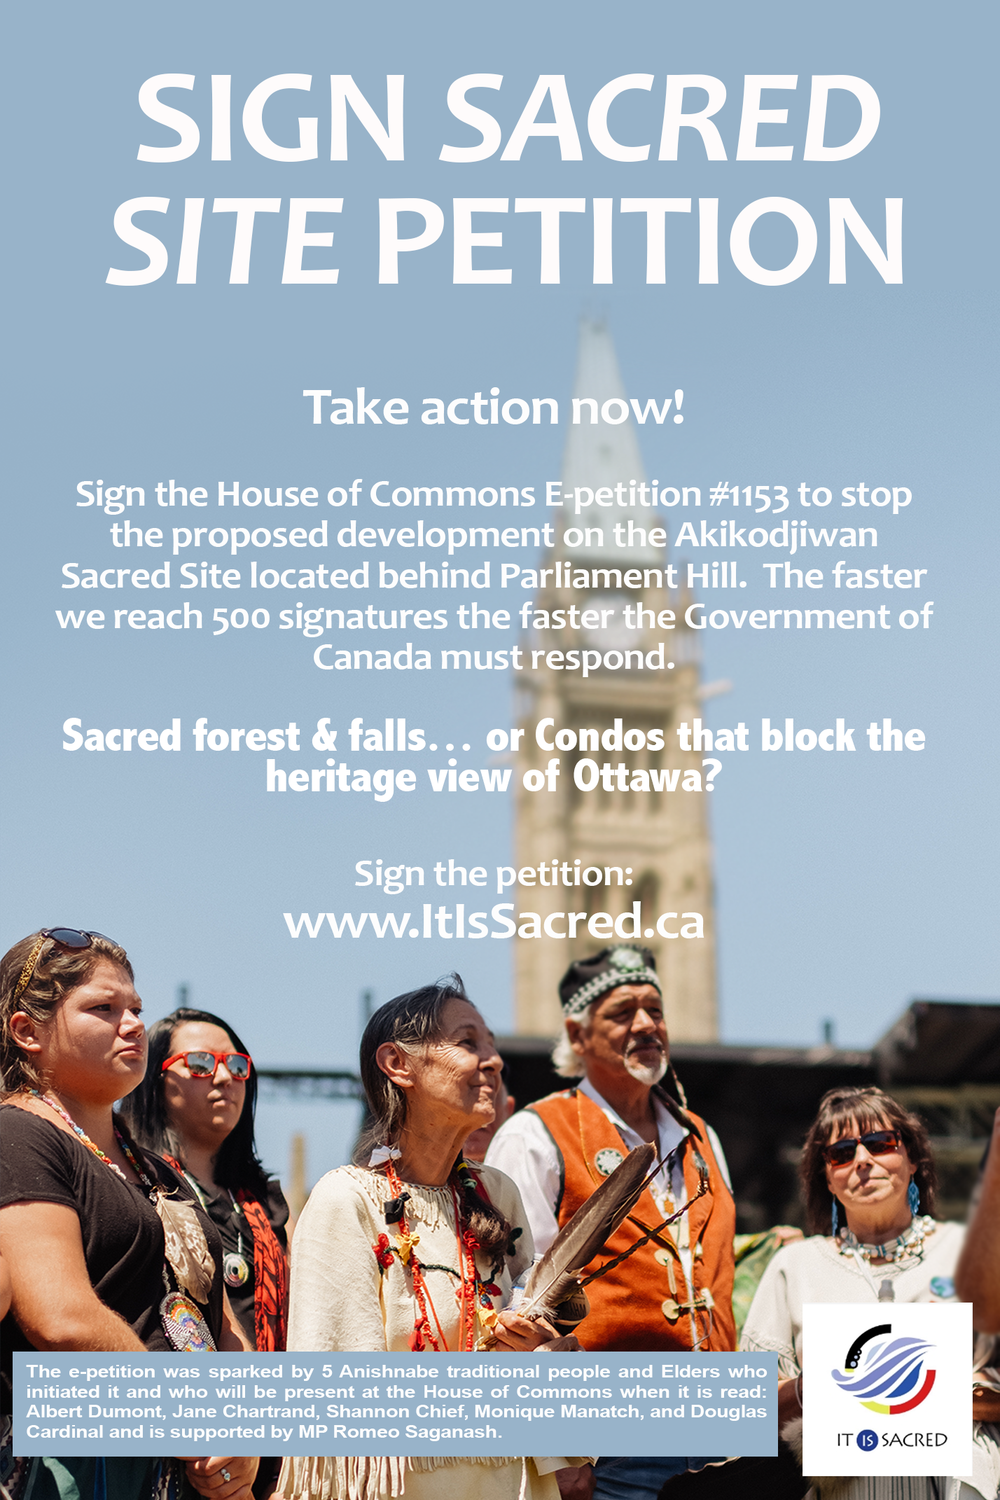 Sign the sacred site petition